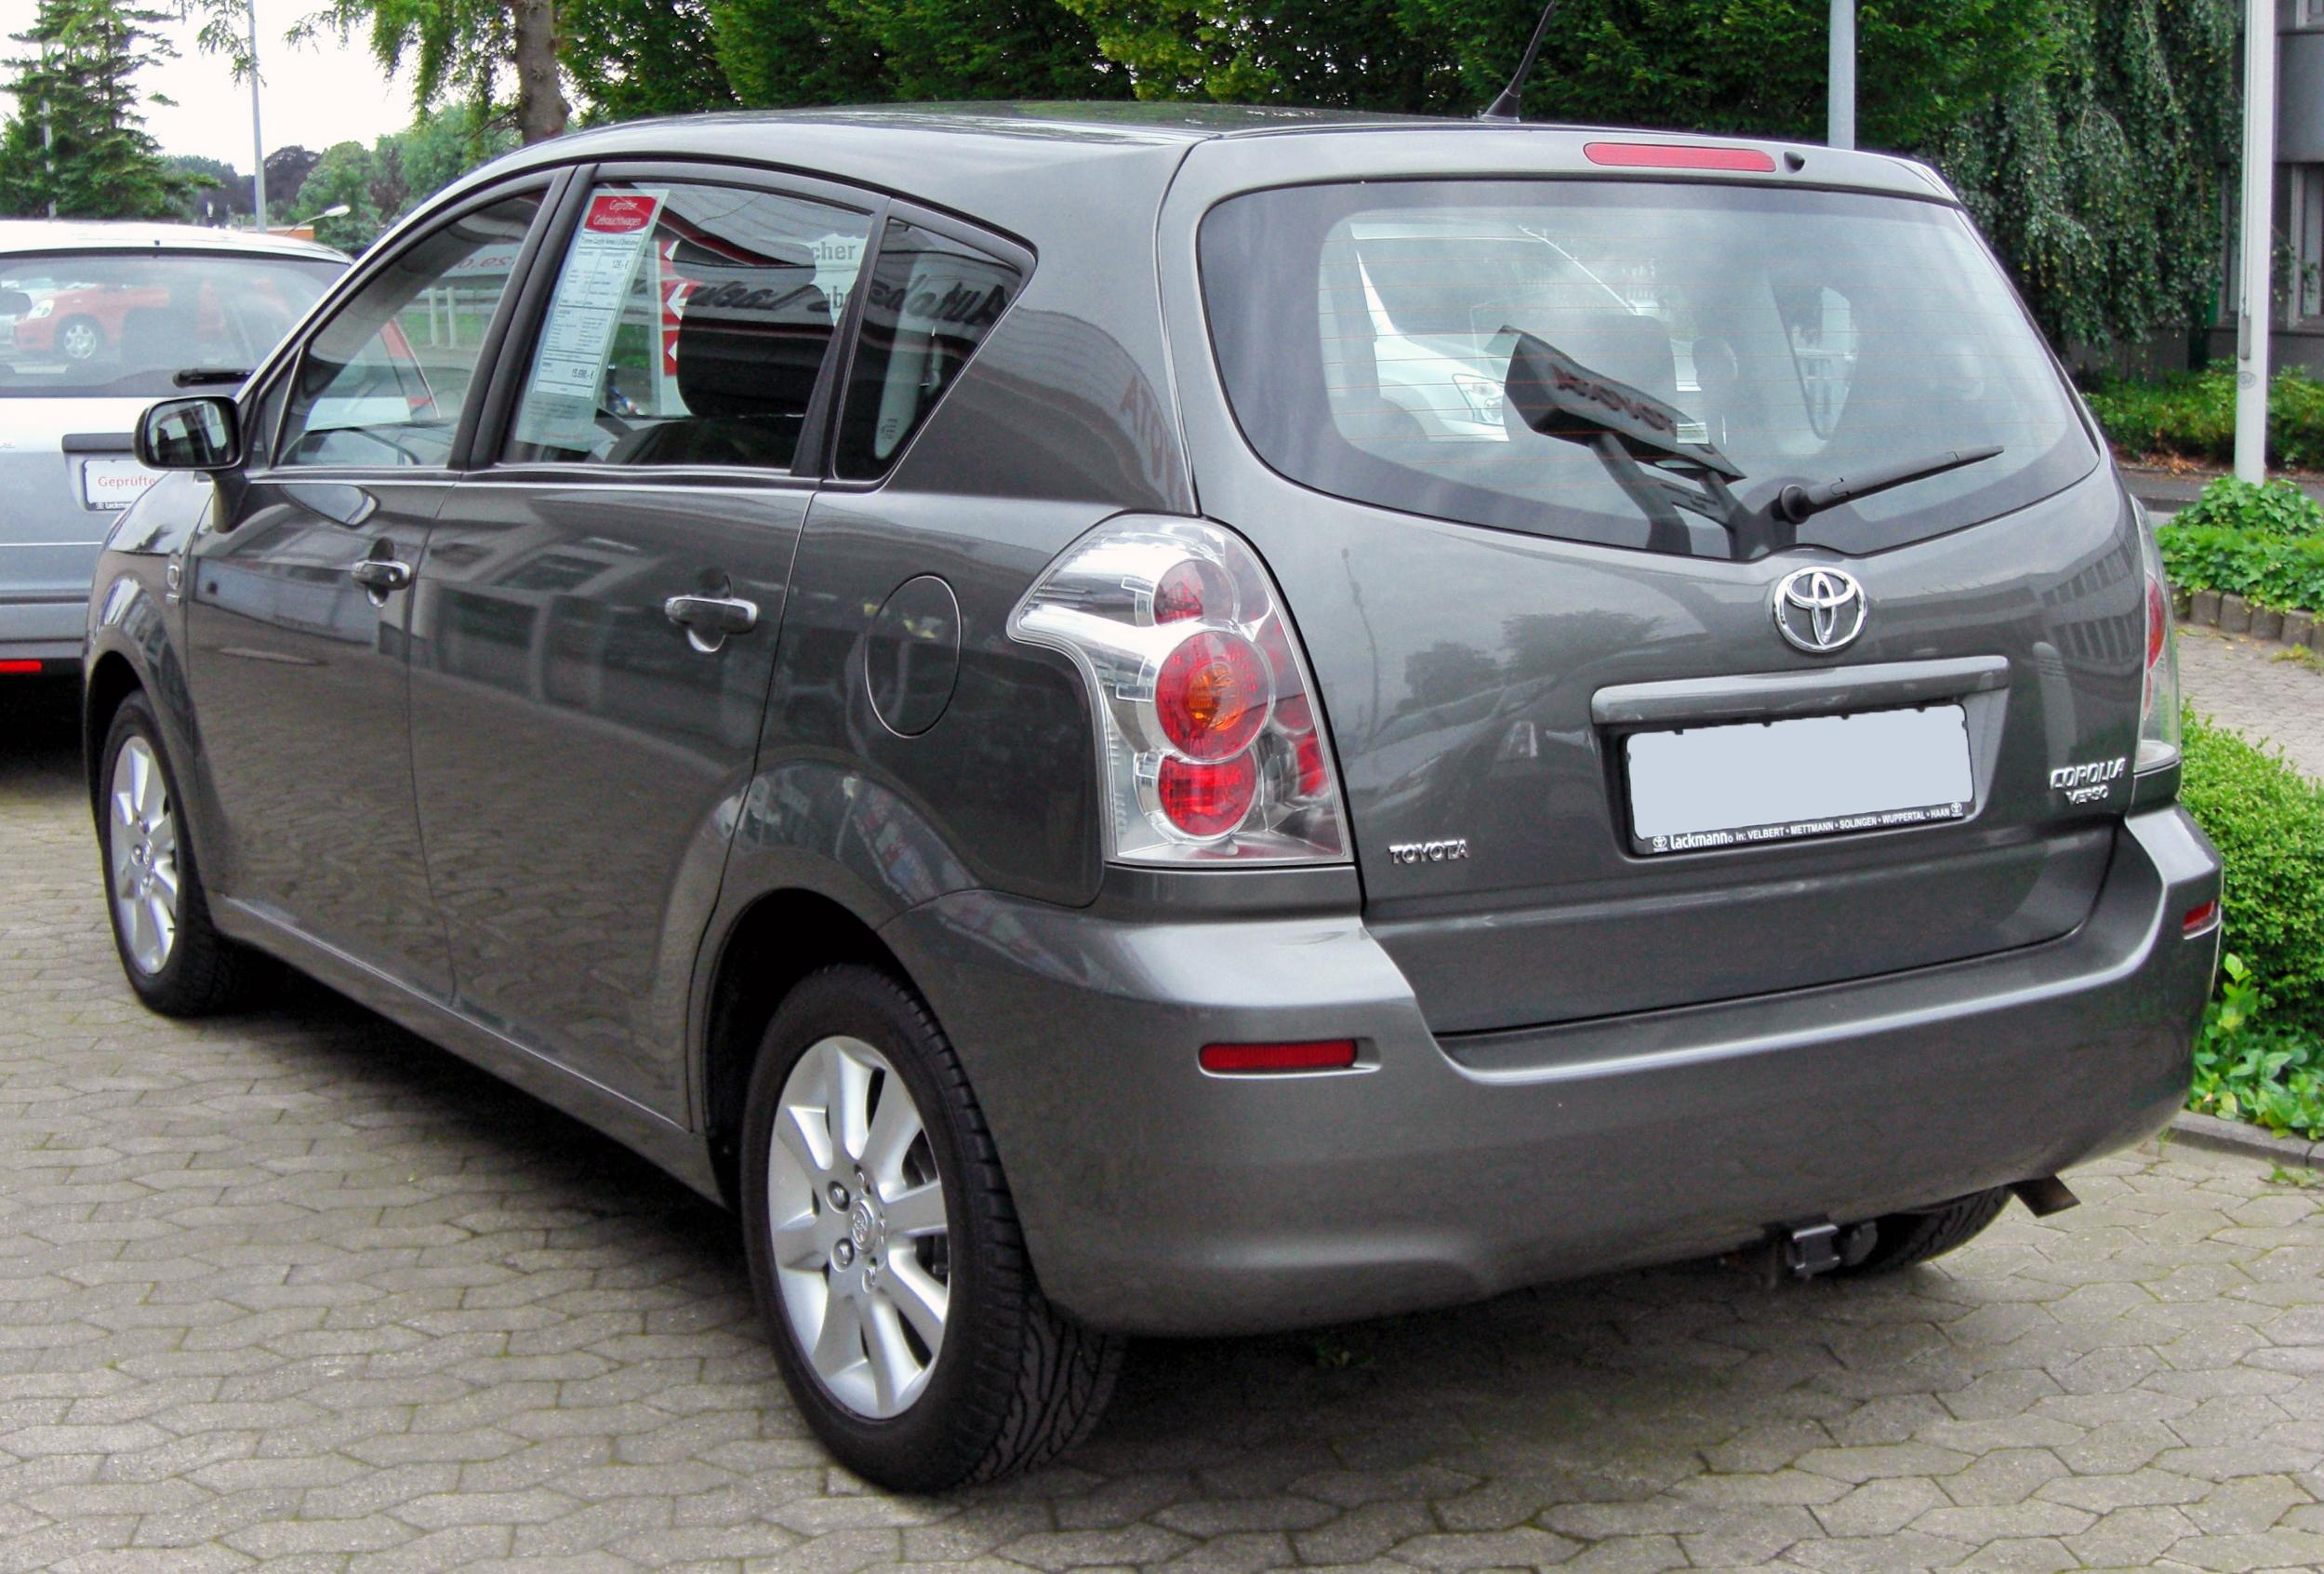 file toyota corolla verso ii 20090620 rear jpg wikimedia. Black Bedroom Furniture Sets. Home Design Ideas